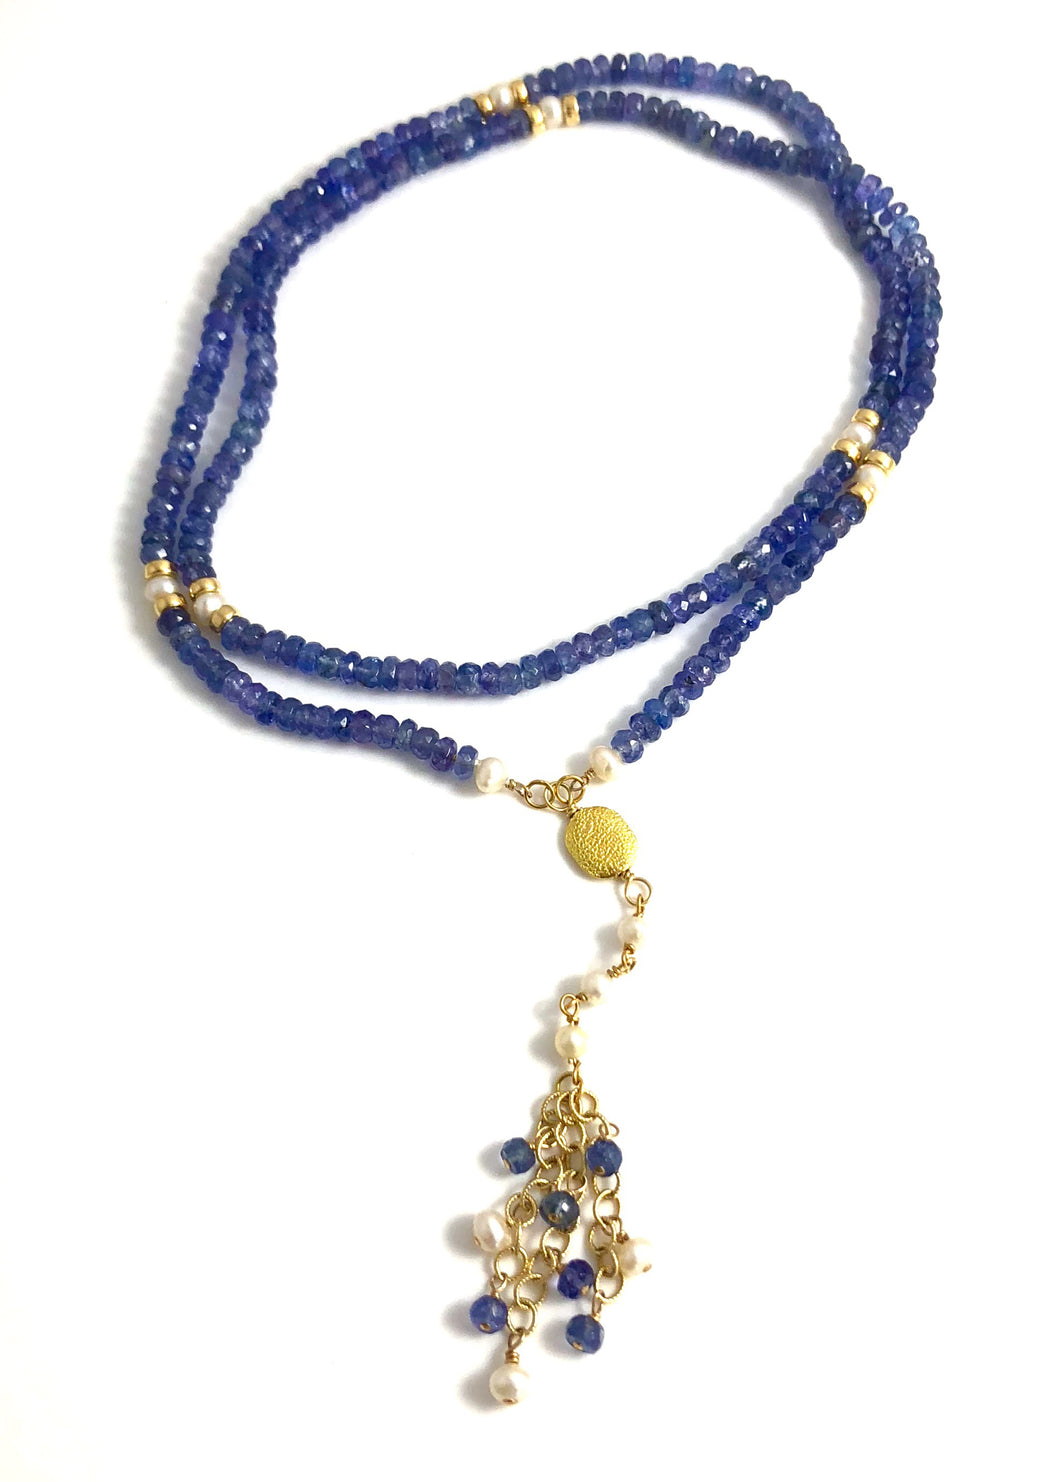 Handmade Tanzanite Pearl Necklace 18k Gold Tassel